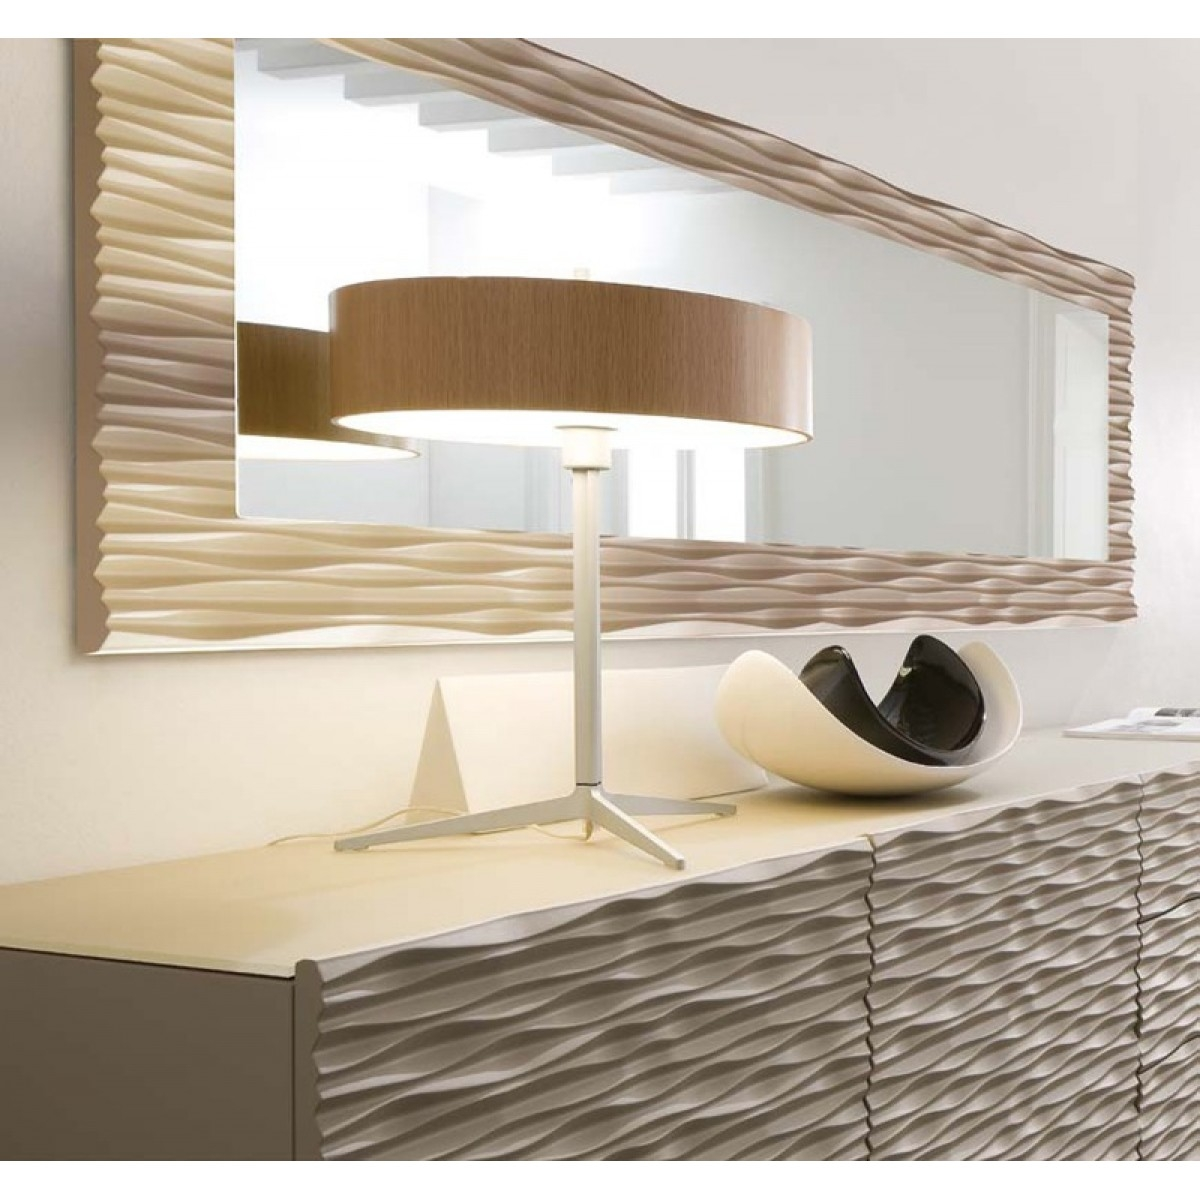 Wall Mirrors Contemporary Amazing Large Designer Wall Mirrors With Regard To Wall Mirrors Contemporary (Image 15 of 15)